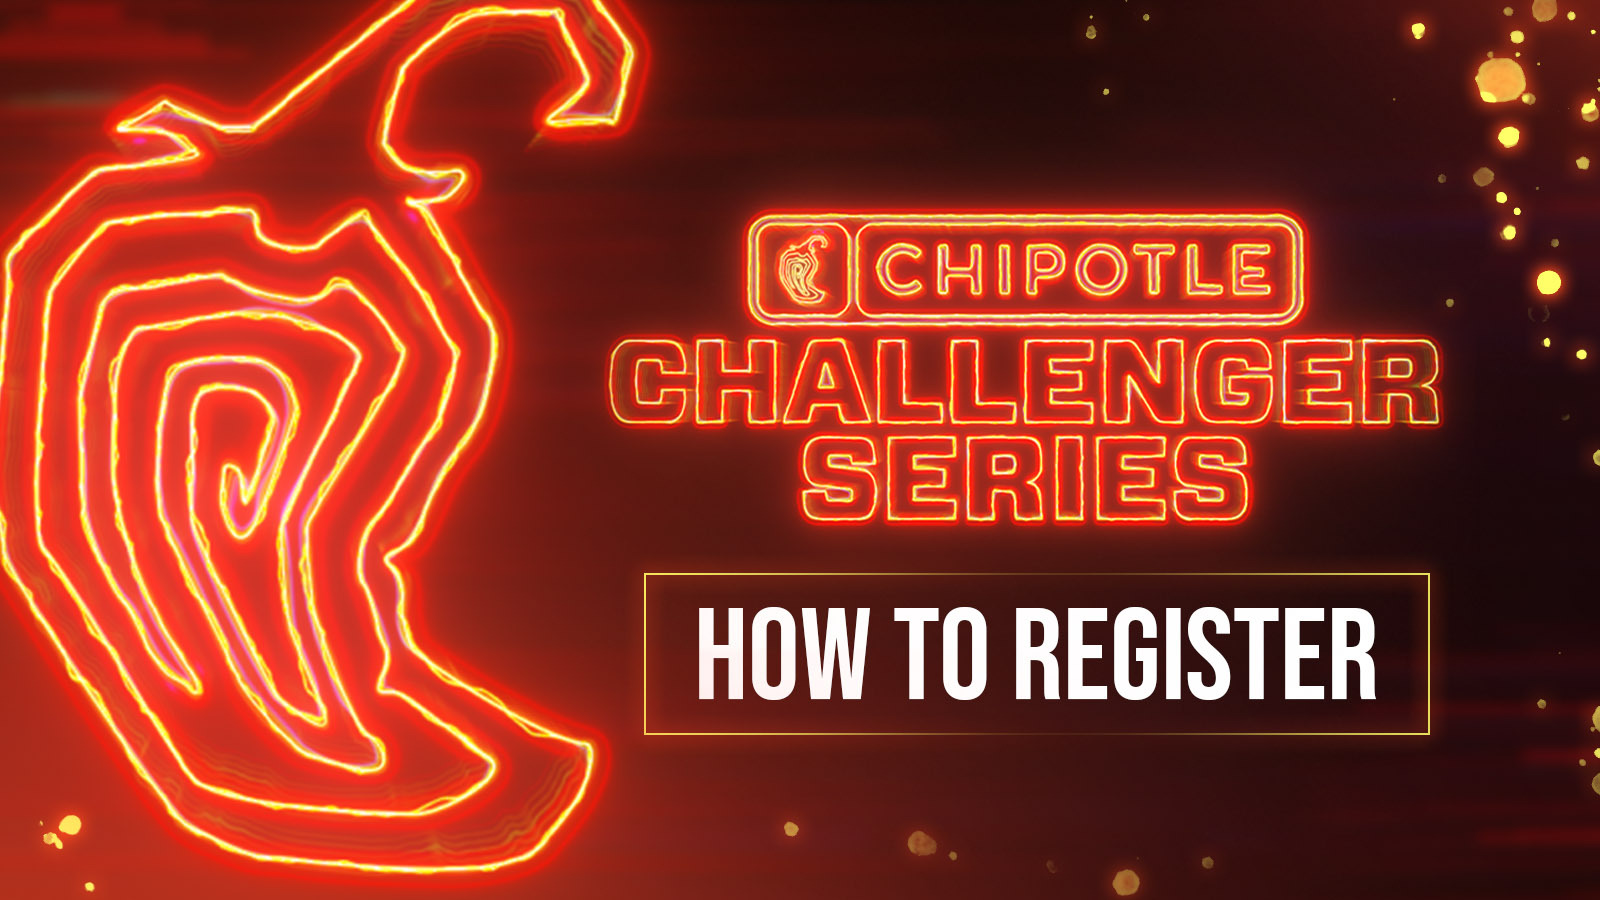 How to register for Chipotle Challenger Series